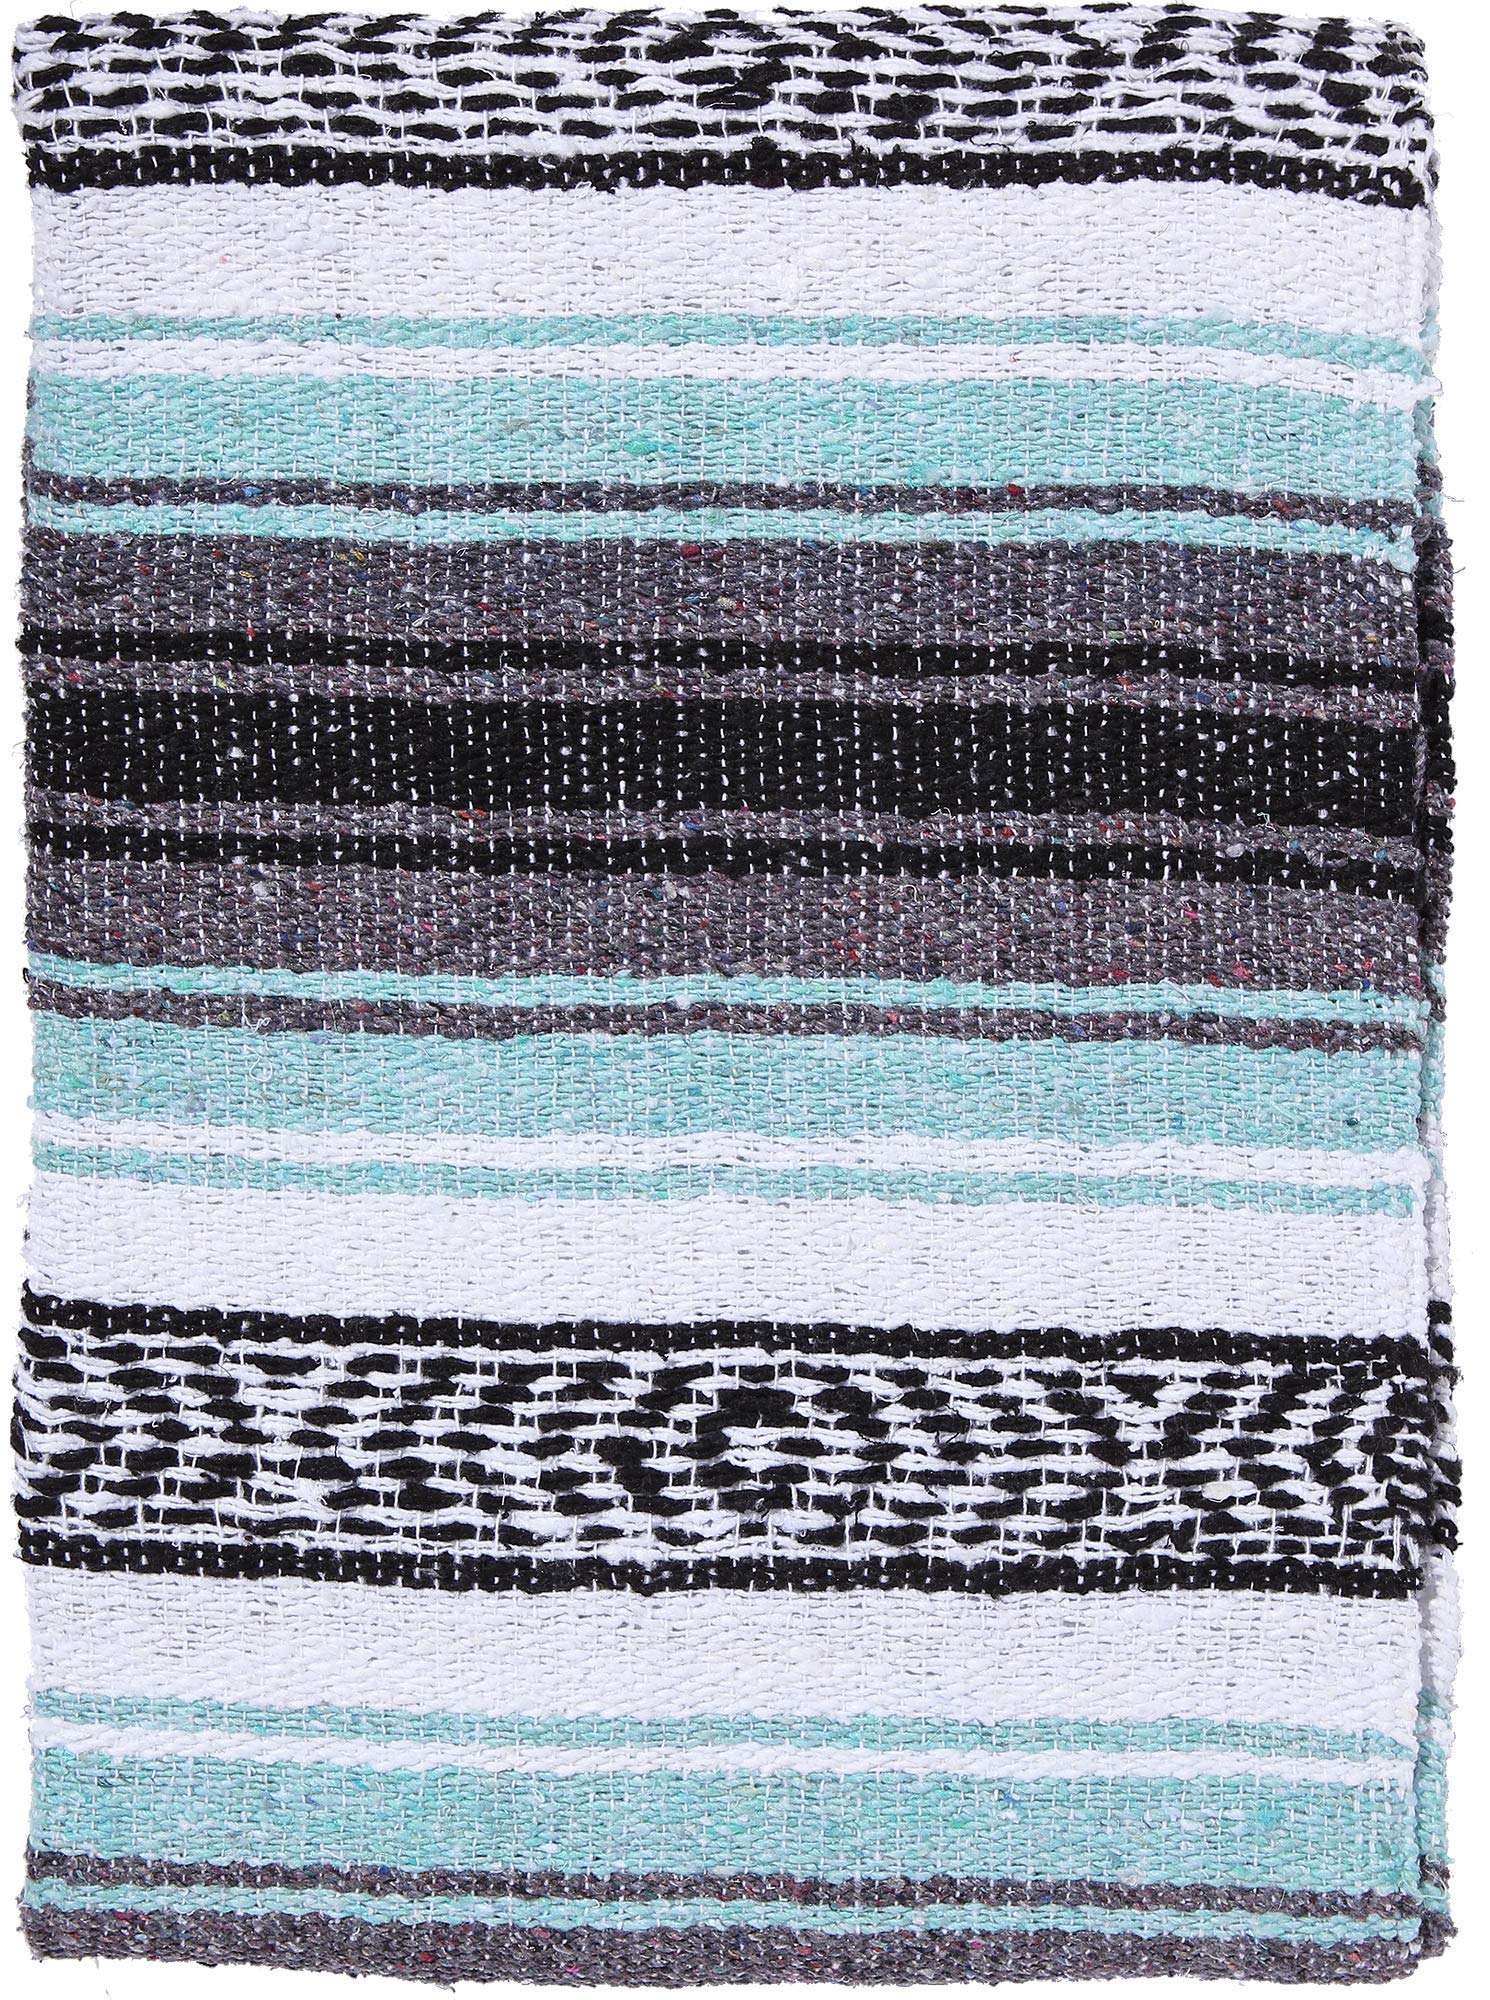 El Paso Designs Genuine Mexican Falsa Blanket - Yoga Studio Blanket, Colorful, Soft Woven Serape Imported from Mexico (Cool Mint & Gray)